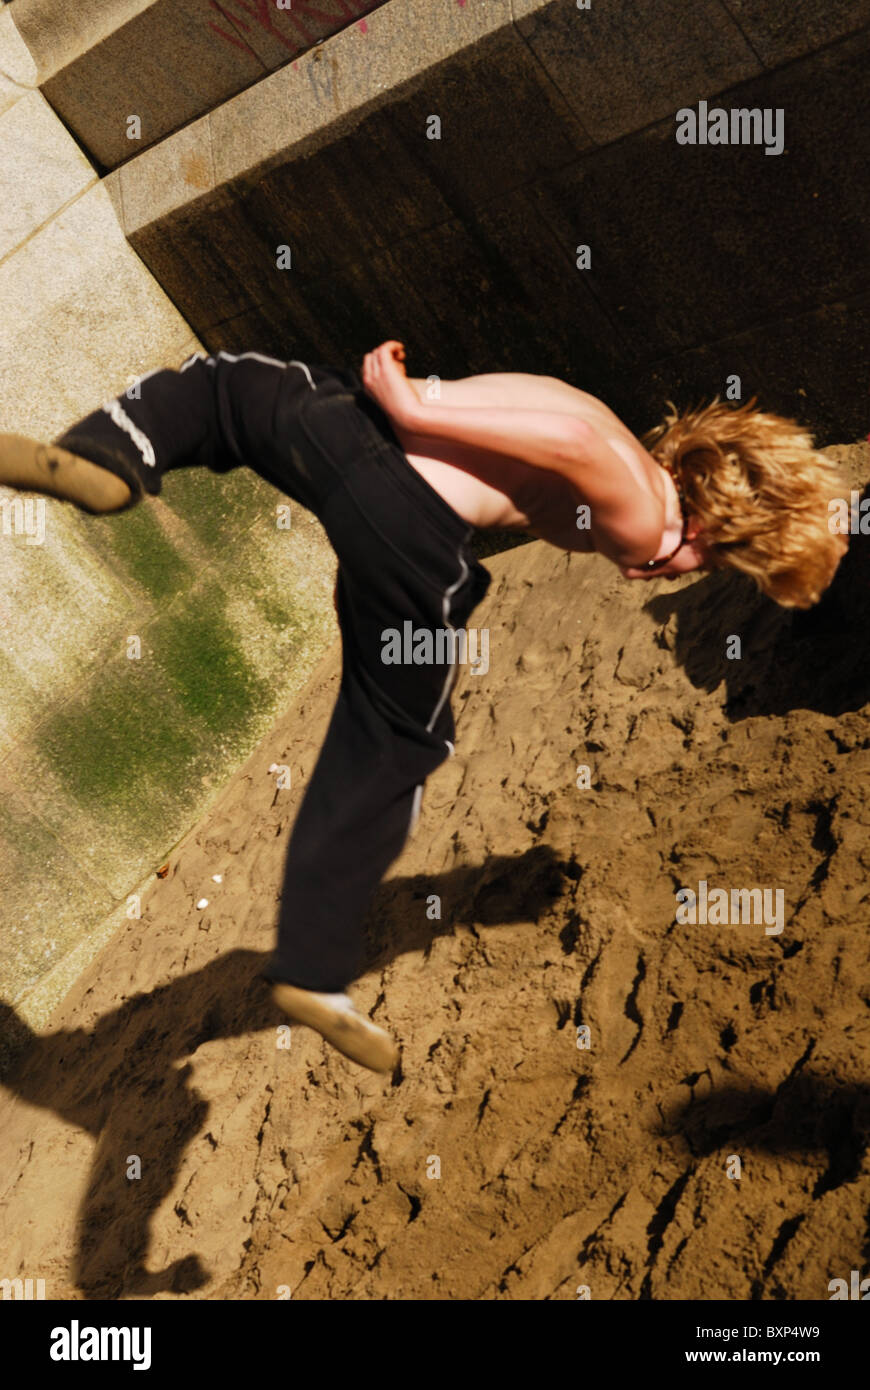 Traceur practicing the art of Parkour on the bank of the River Thames in London. - Stock Image